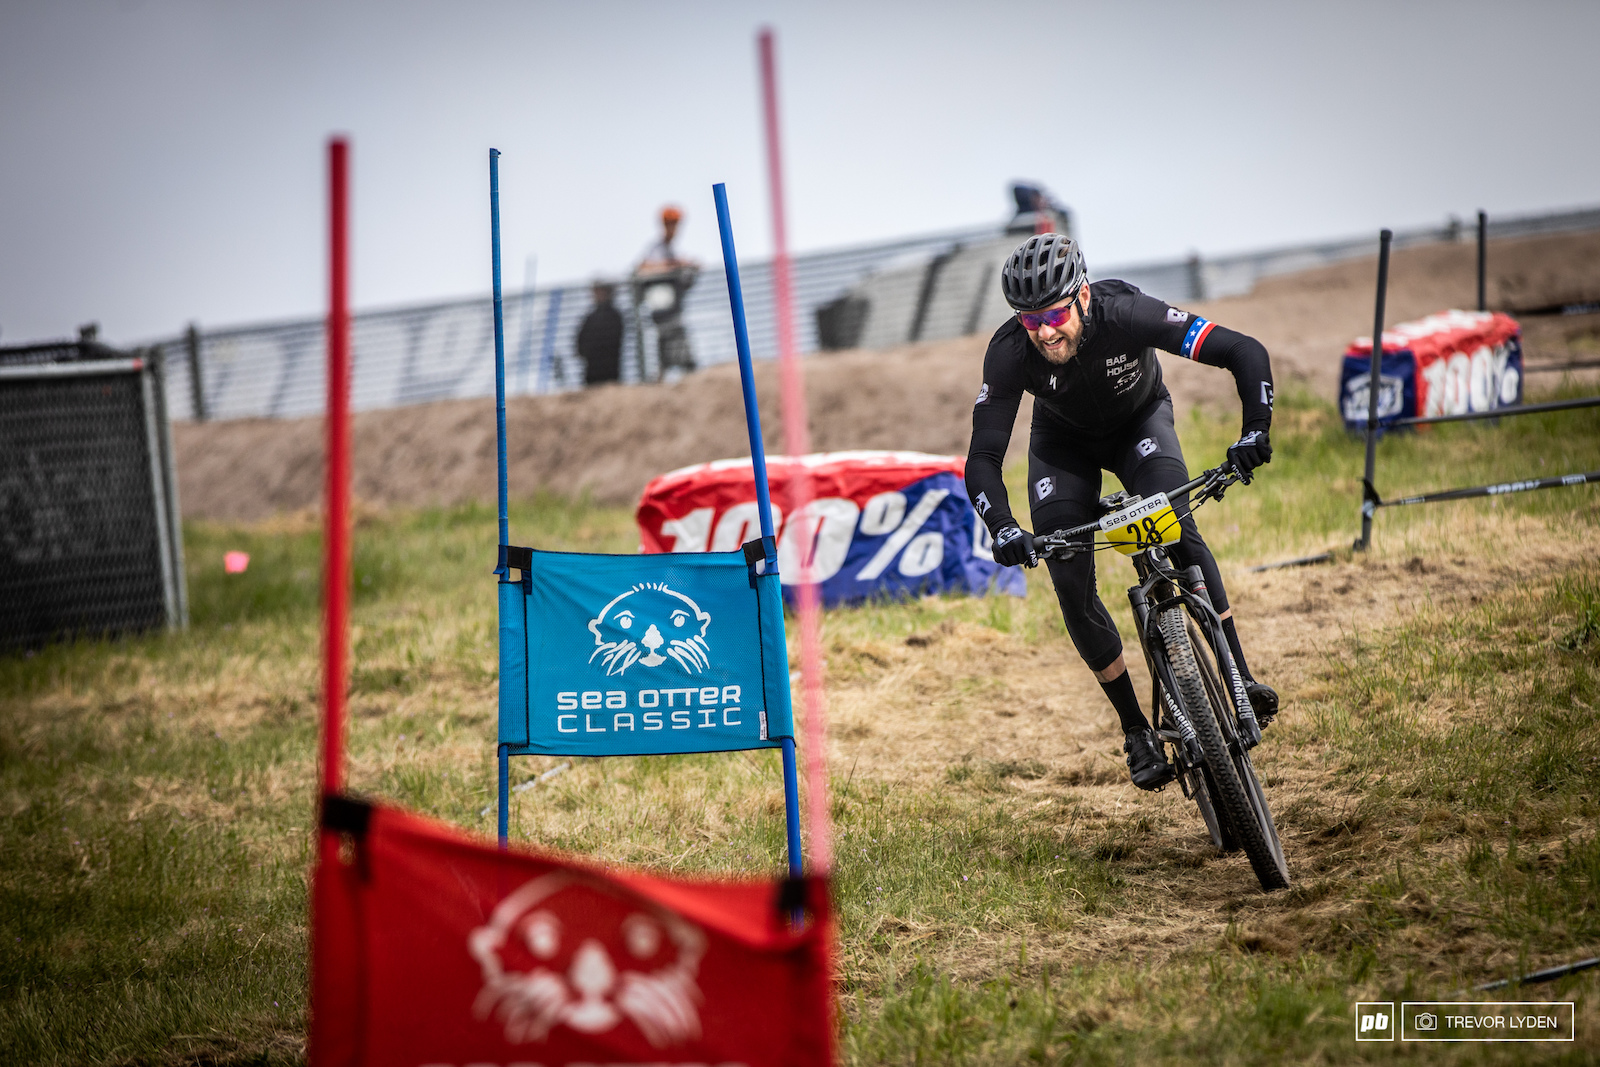 Bobbing and weaving between gates. This final stage is unlike any other enduro.